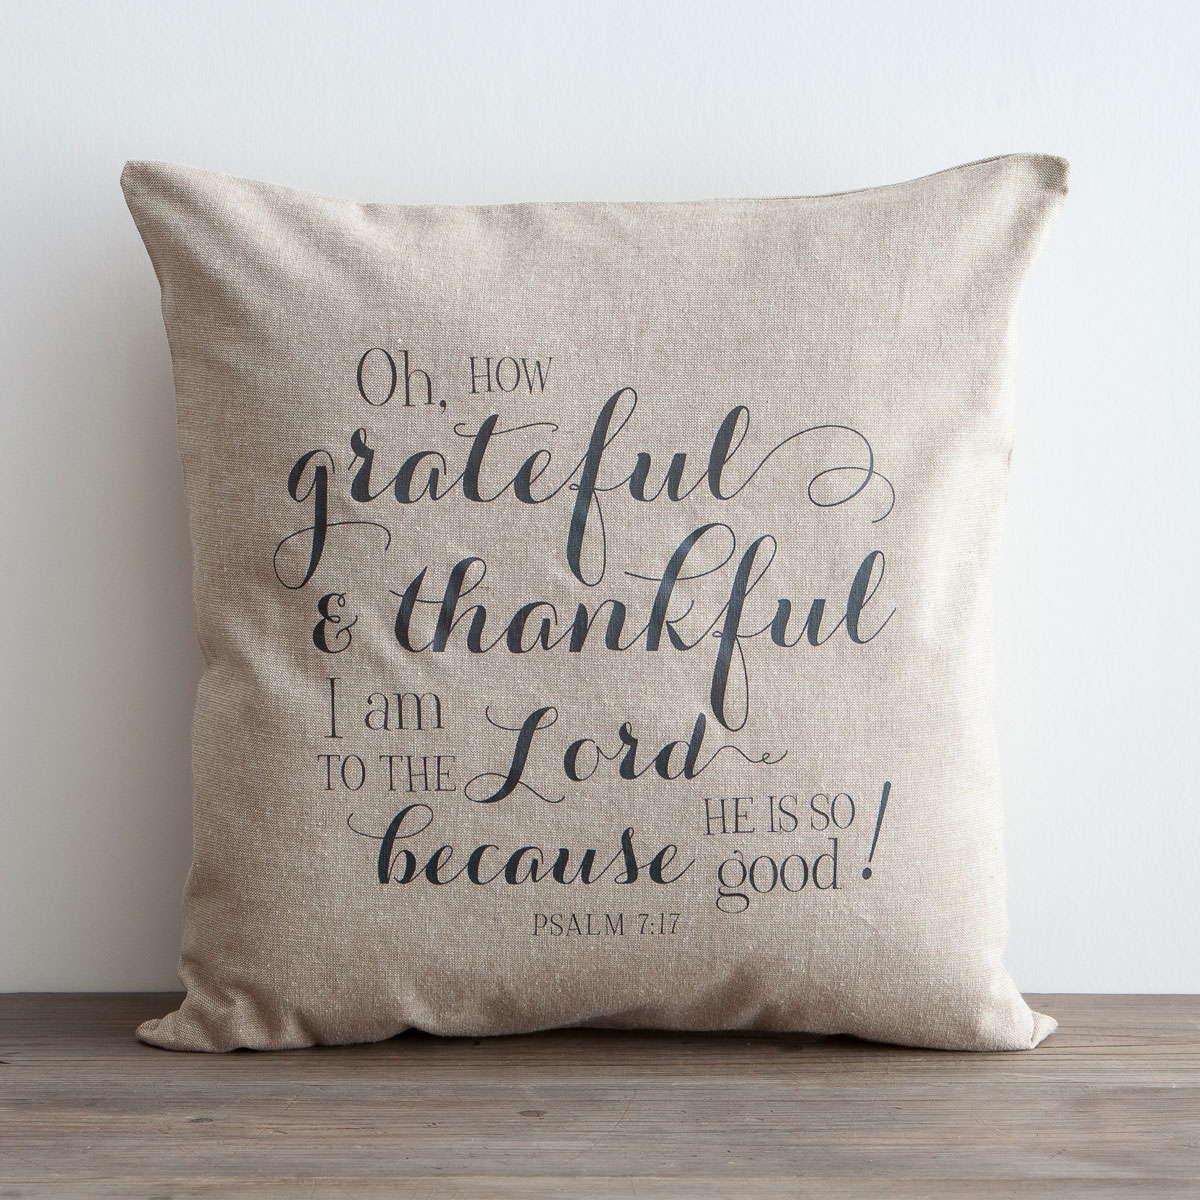 How Grateful & Thankful I Am - Pillow Cover